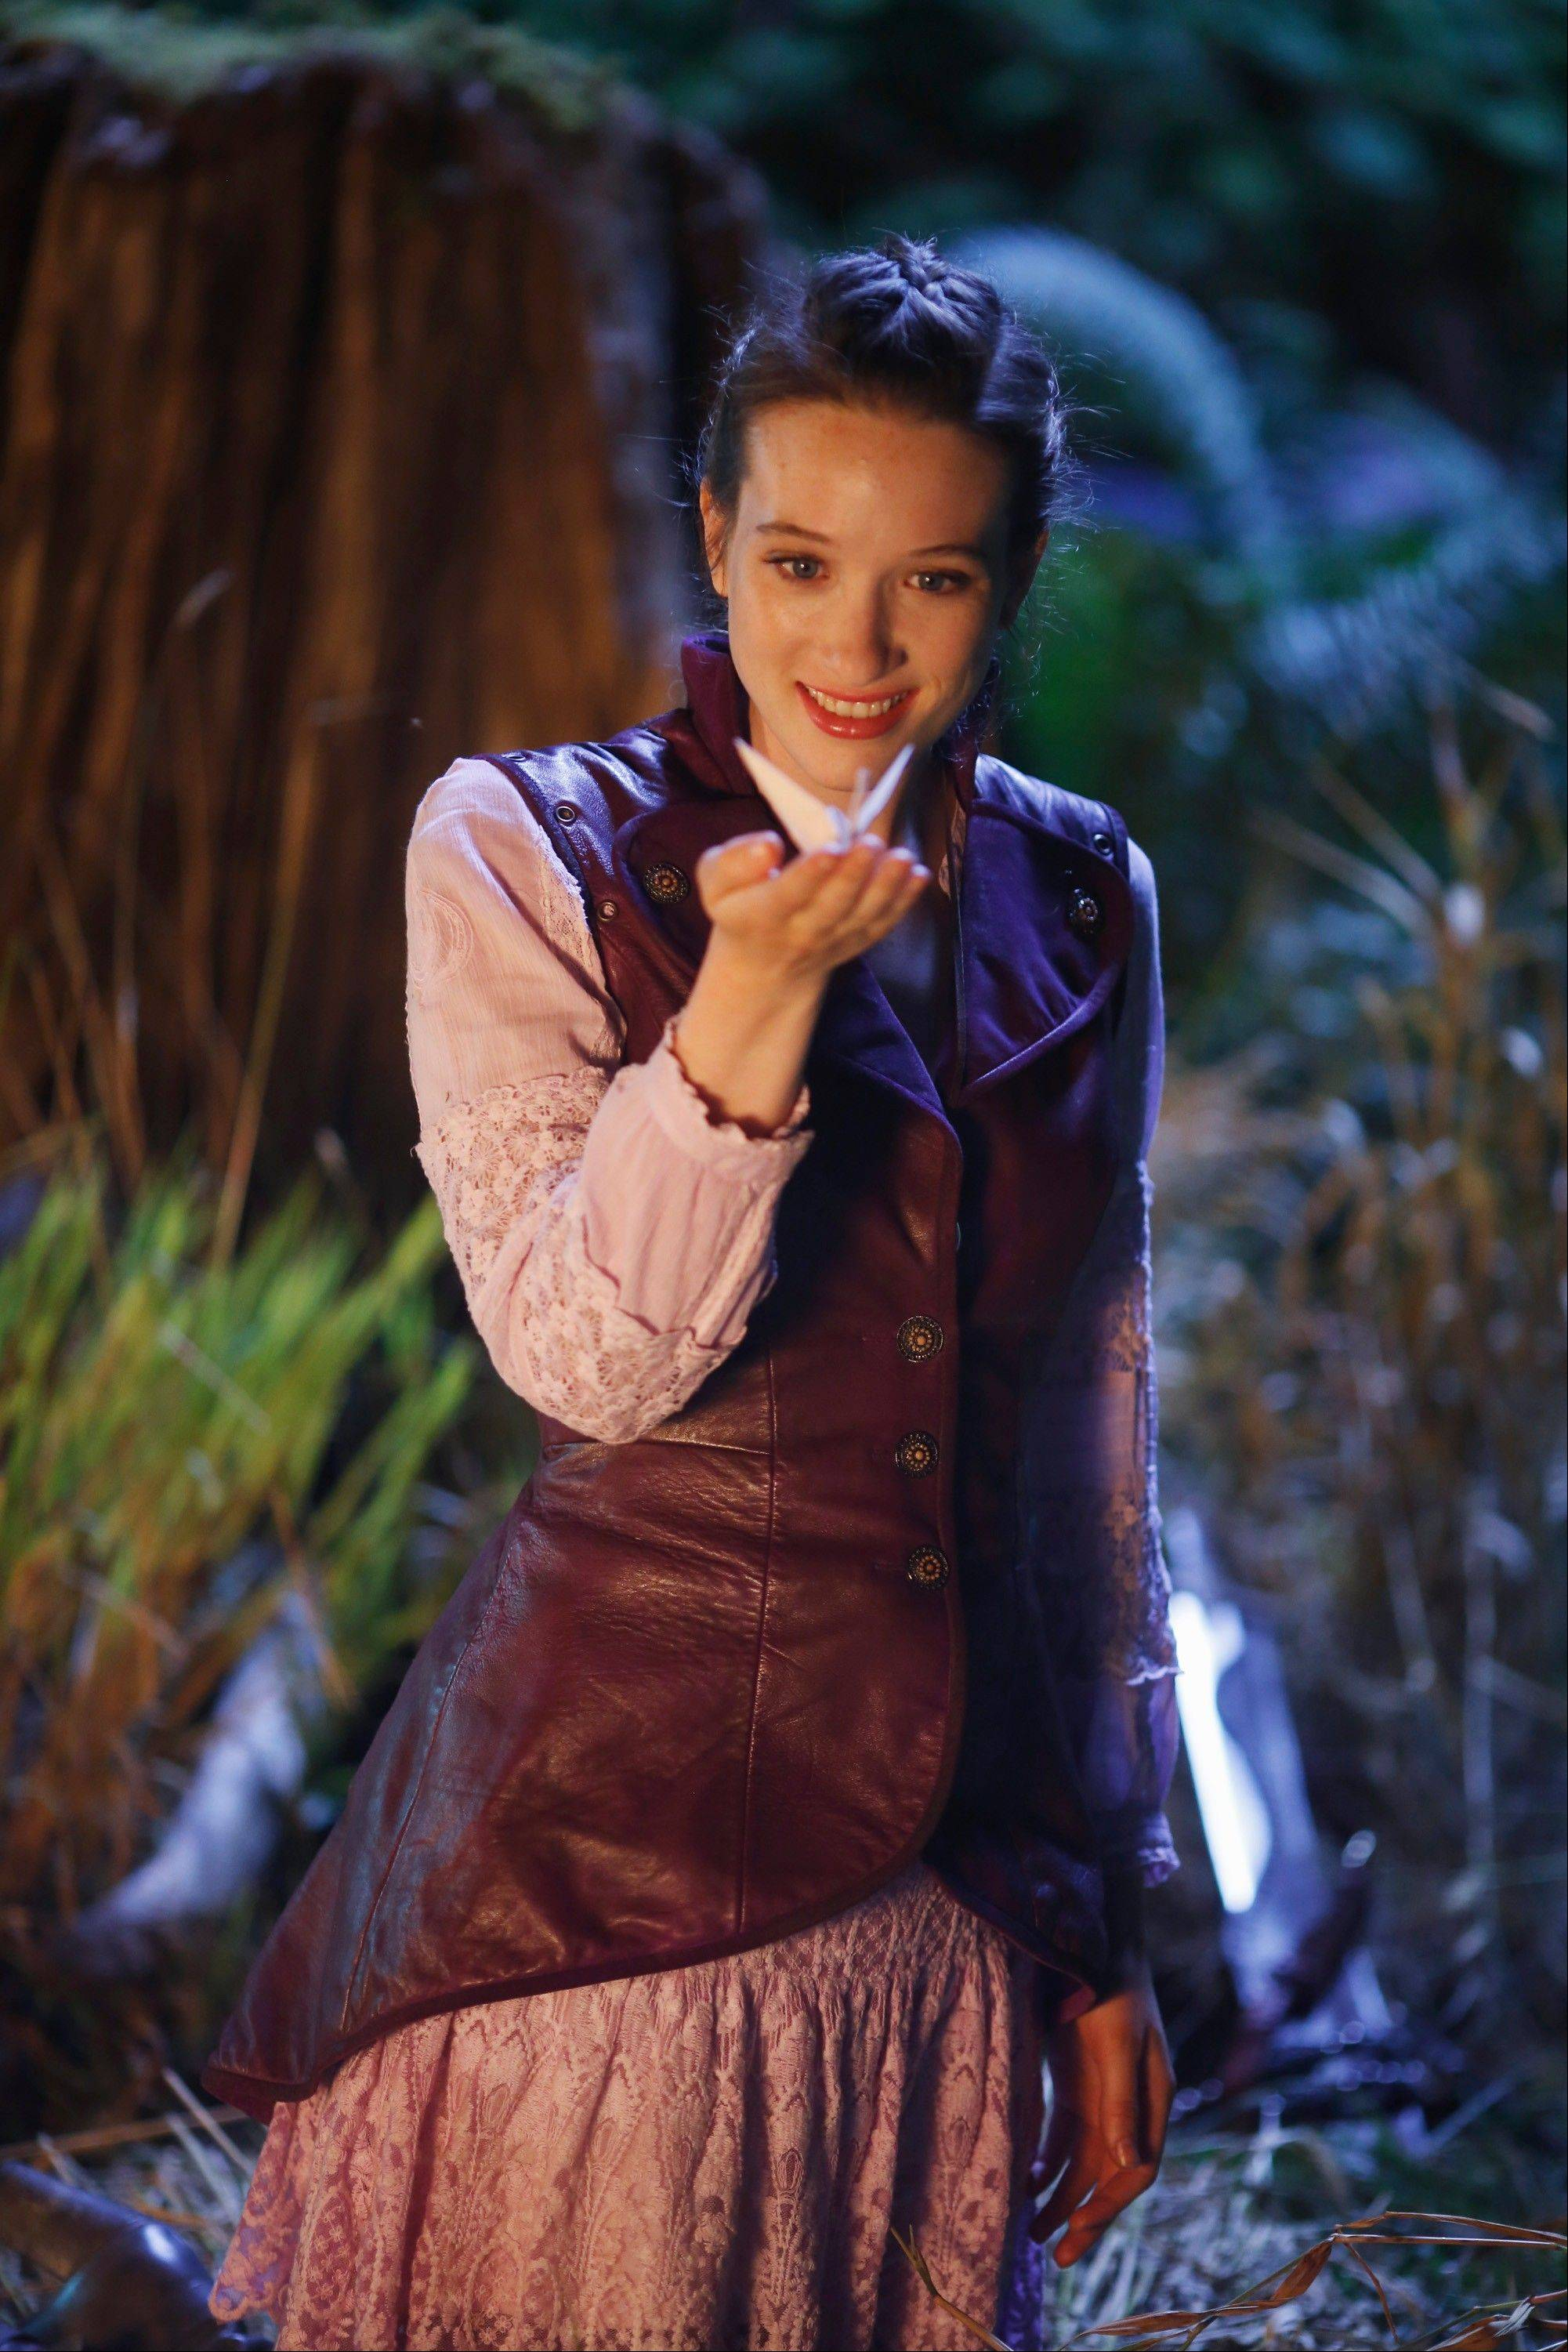 Sophie Lowe plays Alice in the new series �Once Upon a Time in Wonderland,� premiering at 7 p.m. Thursday, Oct. 10, on ABC.